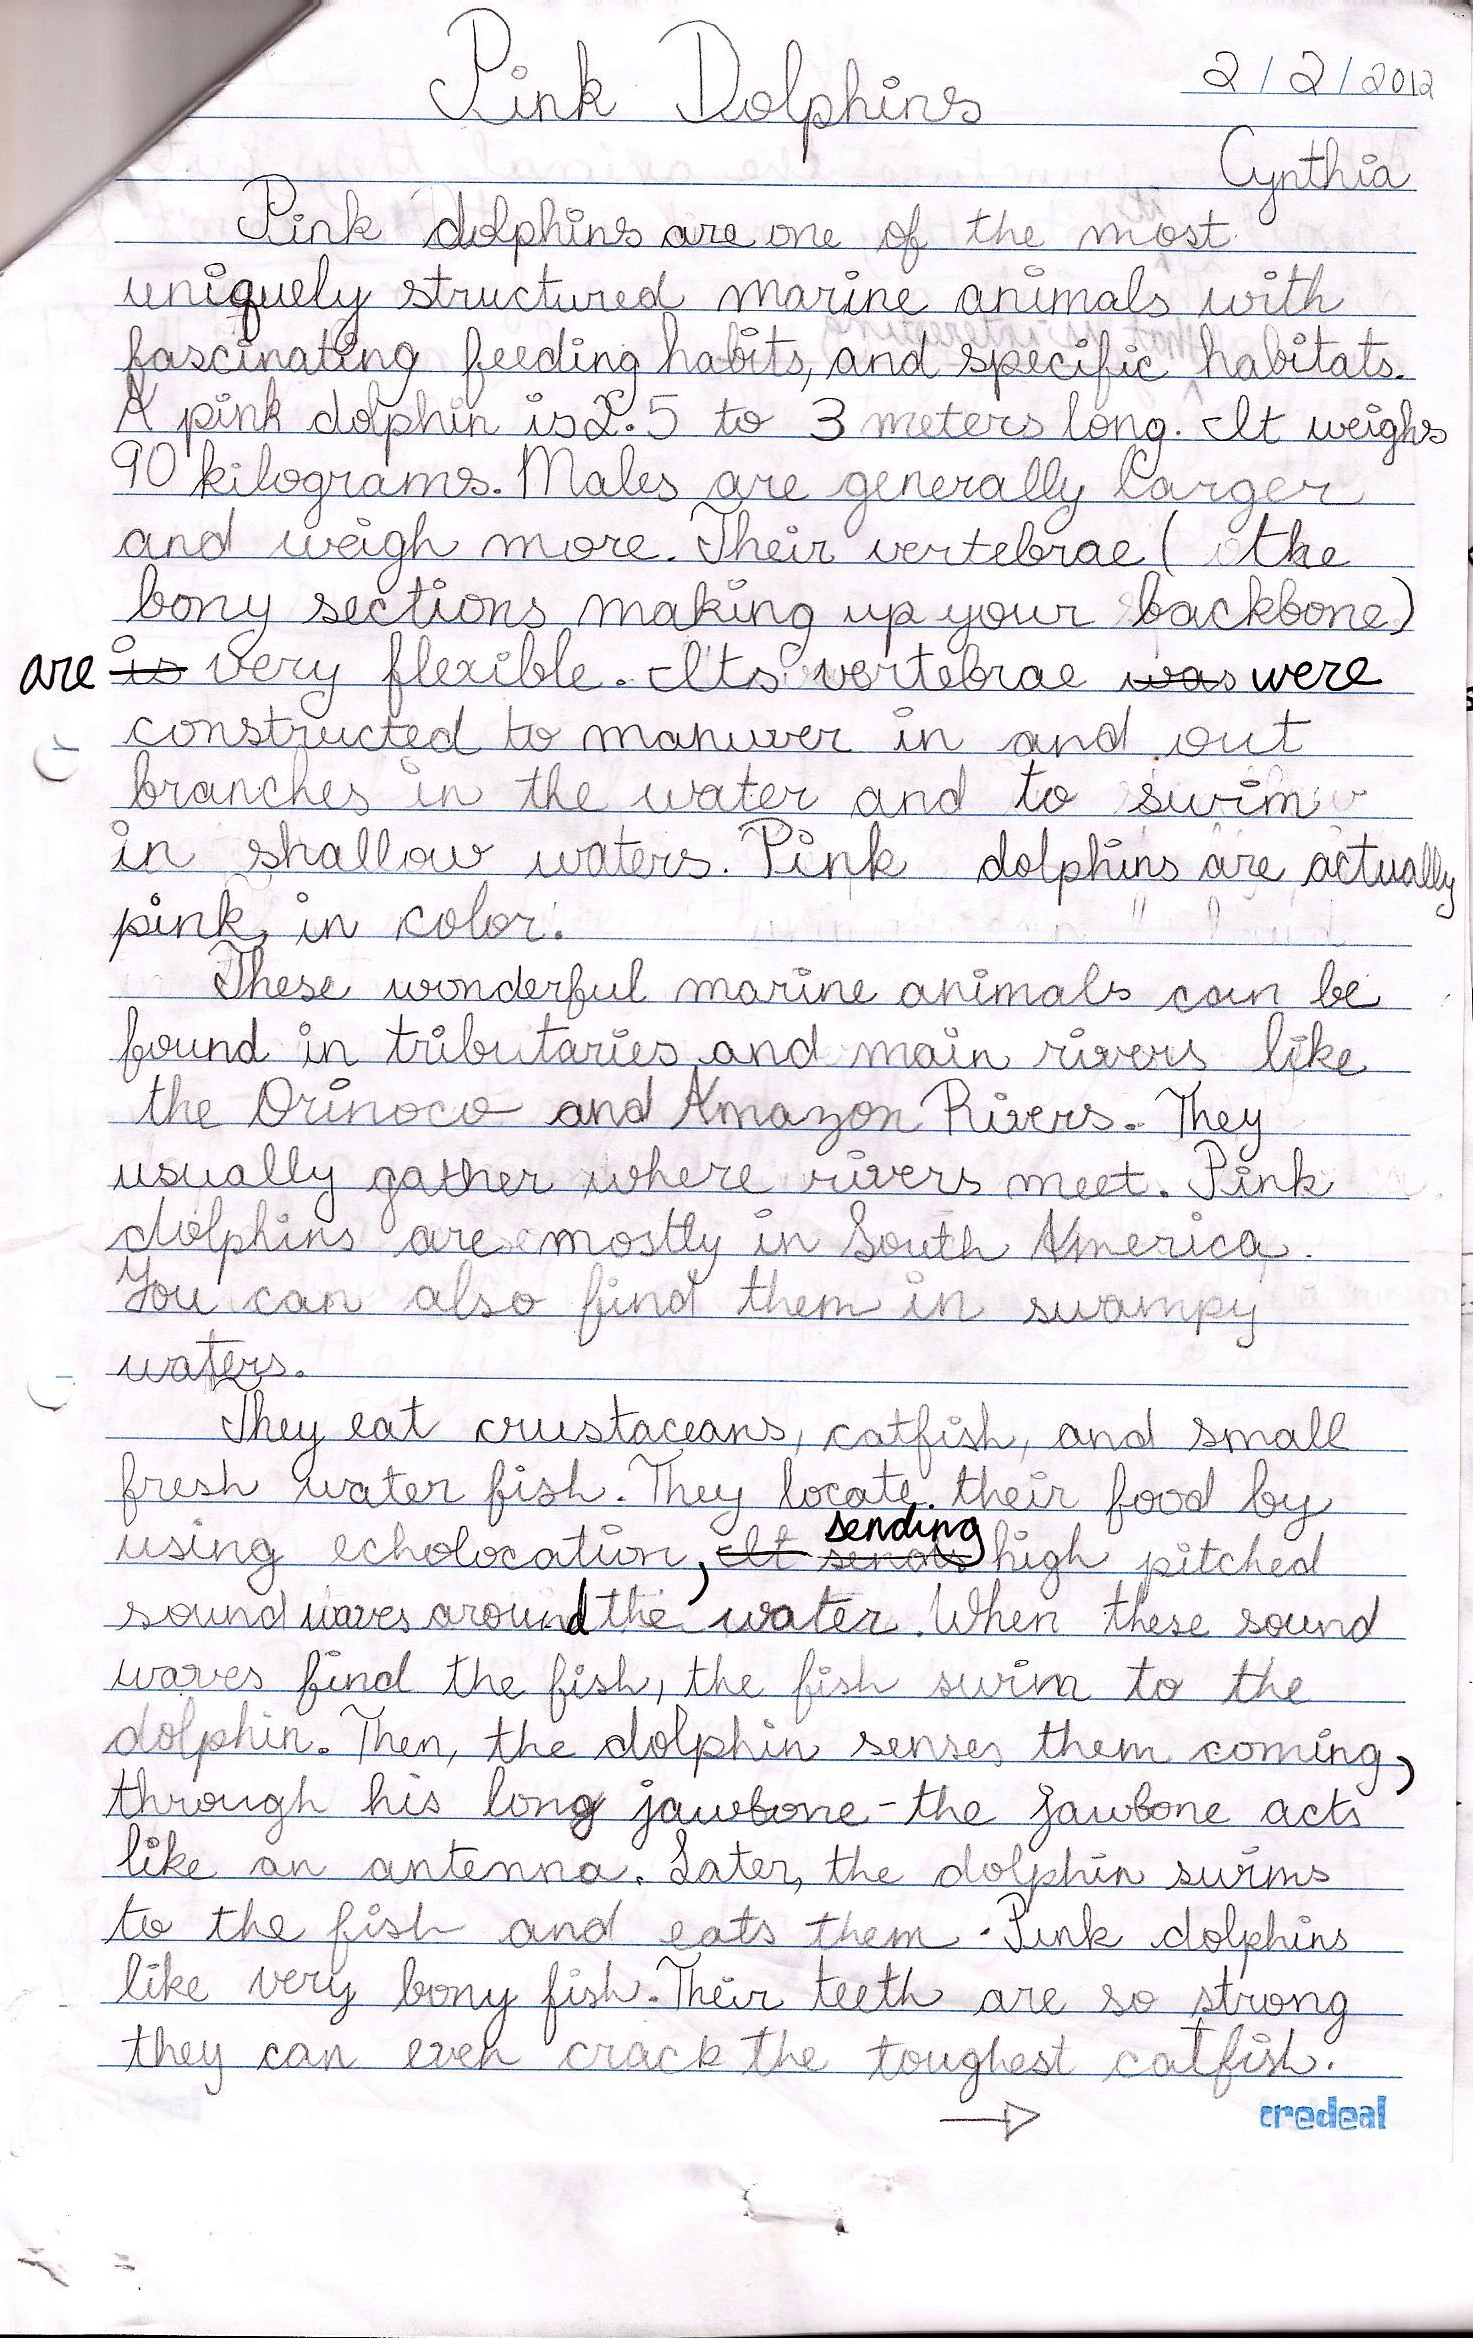 016 Coalition Application Essay Prompts Pink Dolphins Handwritten Draft Frightening Full